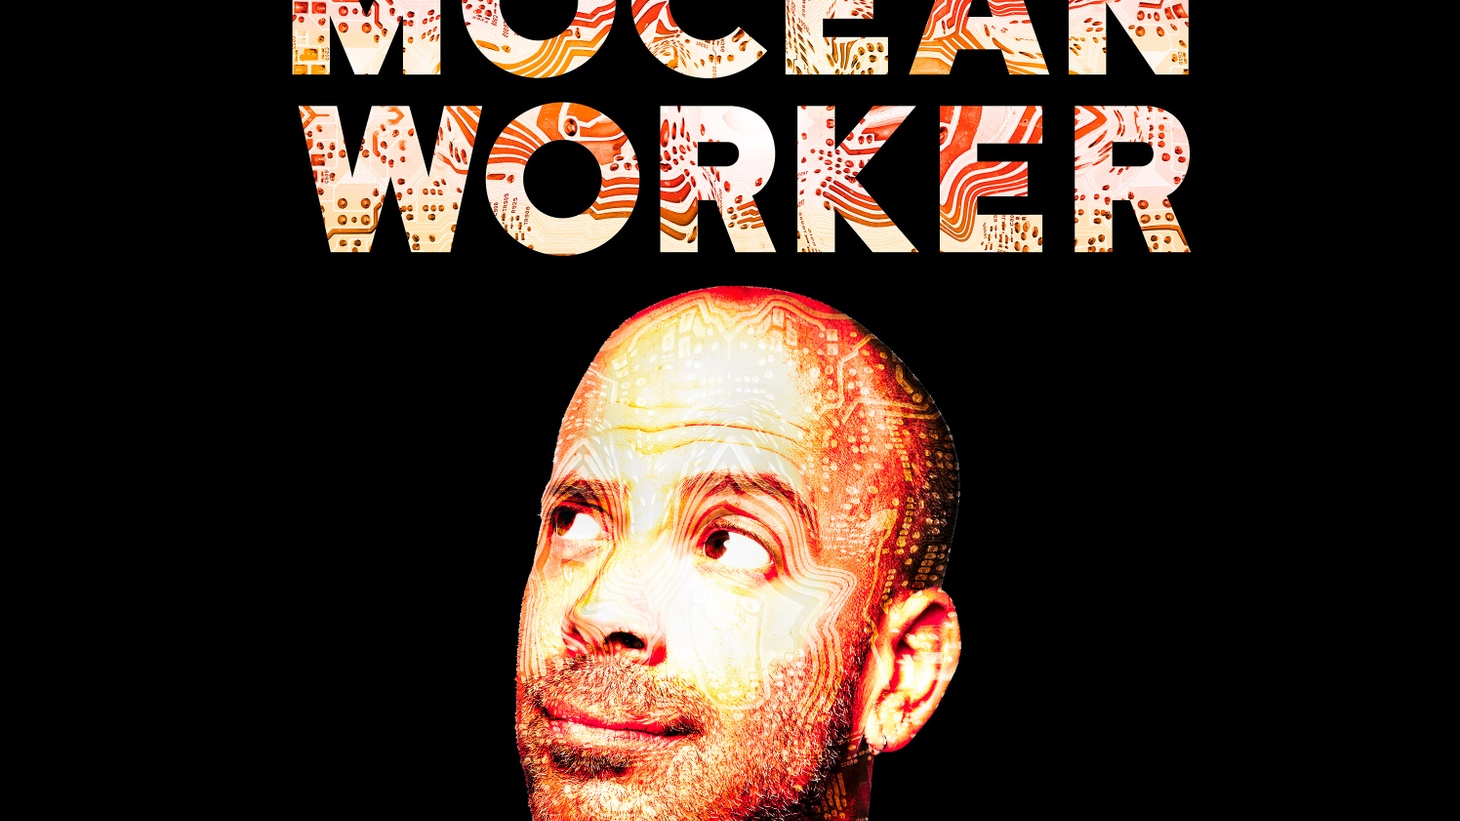 KCRW has no better musical friend than Mocean Worker. Thus, the release of any new Mocean Worker record is cause for celebration around these parts, and his new, self-titled album hits the mark nicely, fulfilling a need we almost forgot we had.